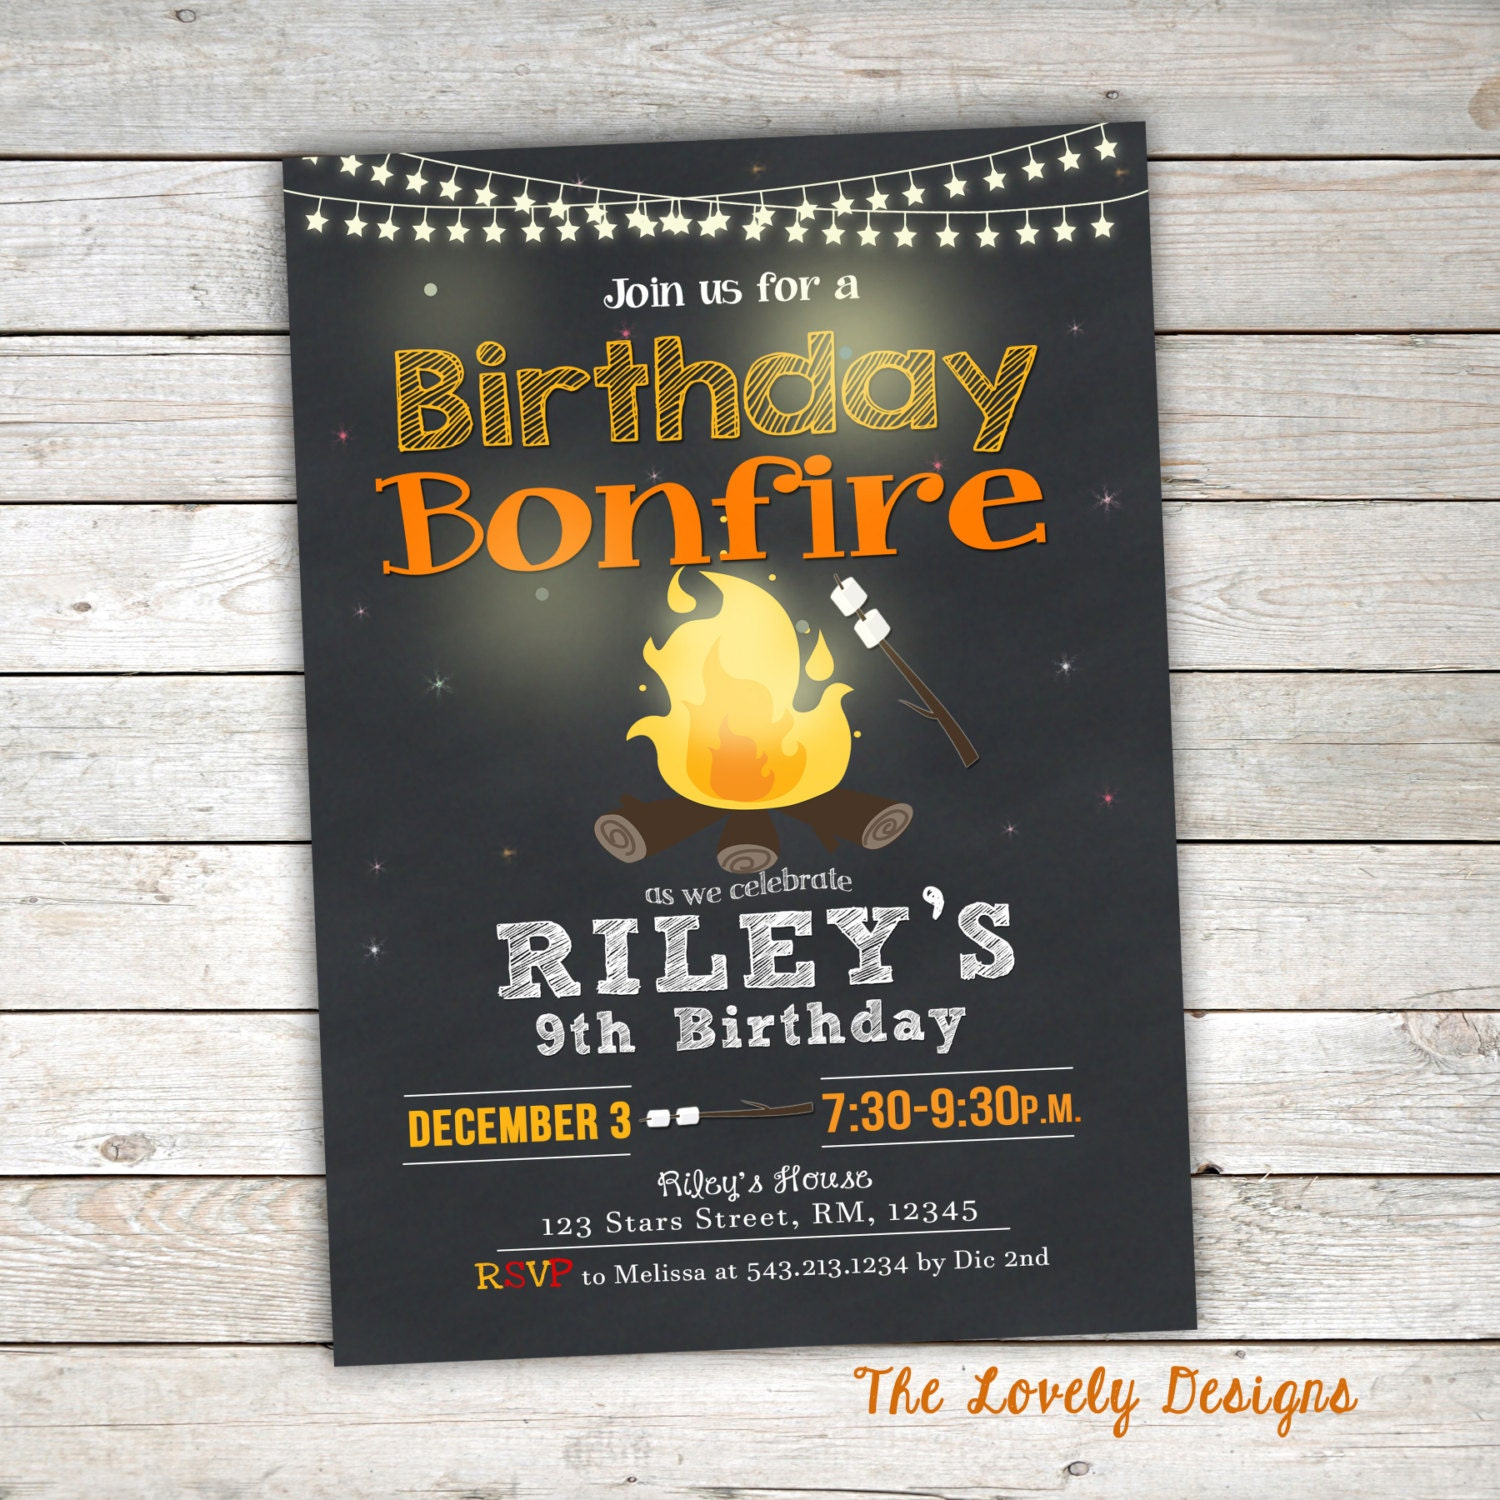 Bonfire Birthday Invitation Camp Birthday Invitation Smores. Newsletter Template Free Publisher. Office Party Invitation Template. Organizational Chart Template Word. London School Of Economics Graduate Programs. Cover Page Template Word. Graduation Party Food Ideas For A Crowd. High School Graduation Dresses. Free Ecommerce Website Template